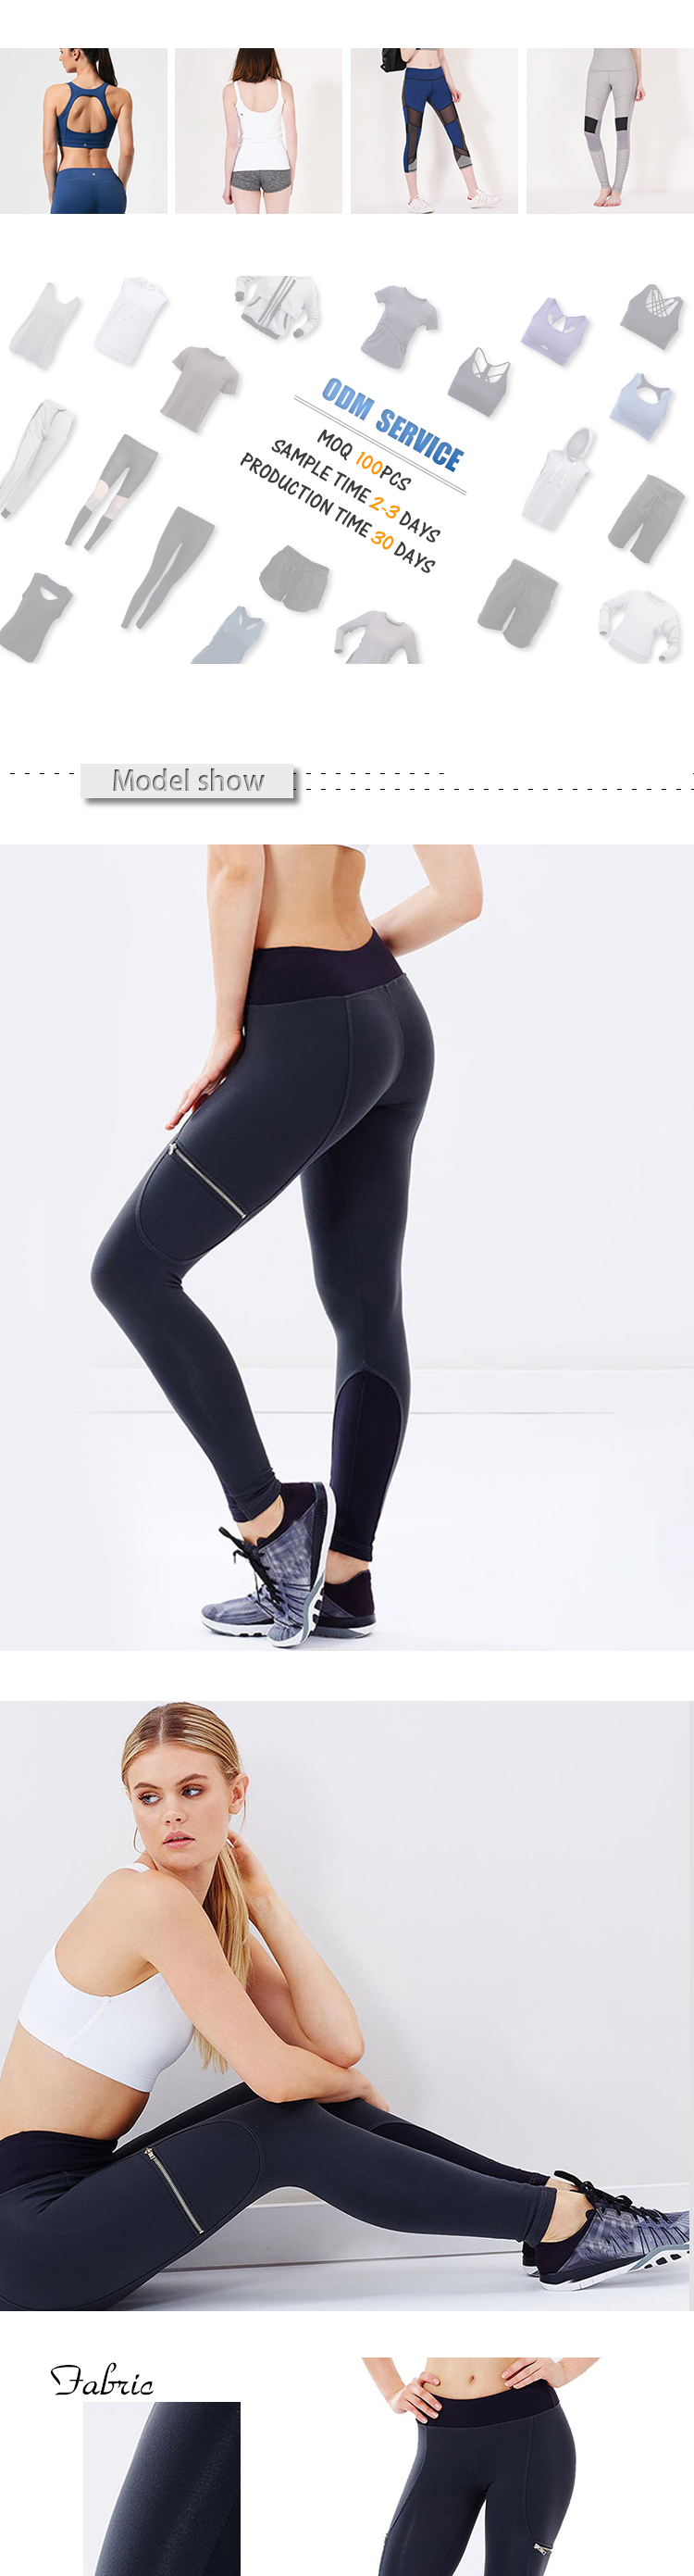 Yoga Pantalons Sport Plein Air vêtements de yoga gym leggings gros